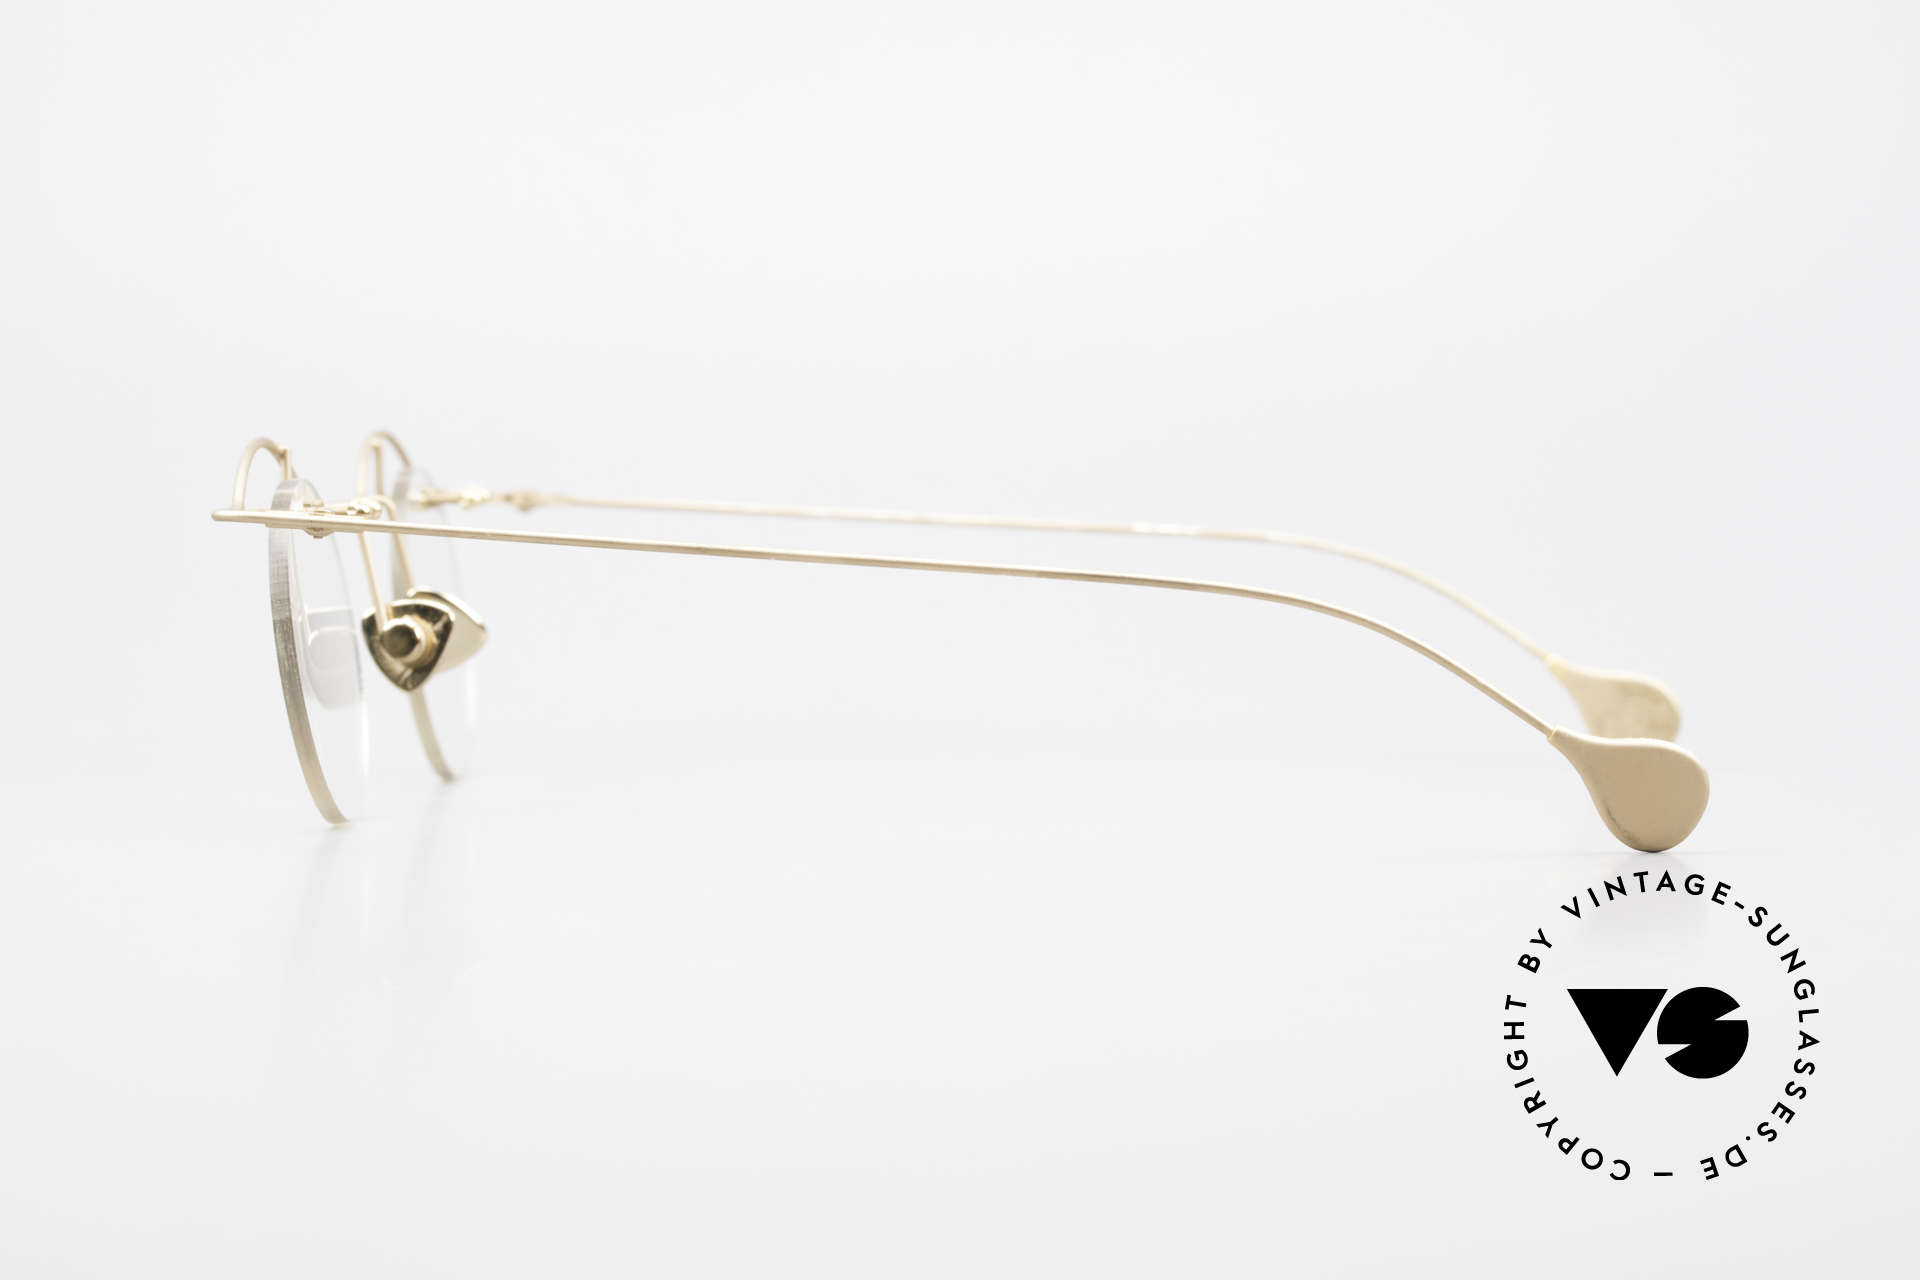 Paul Chiol 02 Bauhaus Eyeglasses Rimless, the frame (Bauhaus style) can be glazed optionally, Made for Men and Women